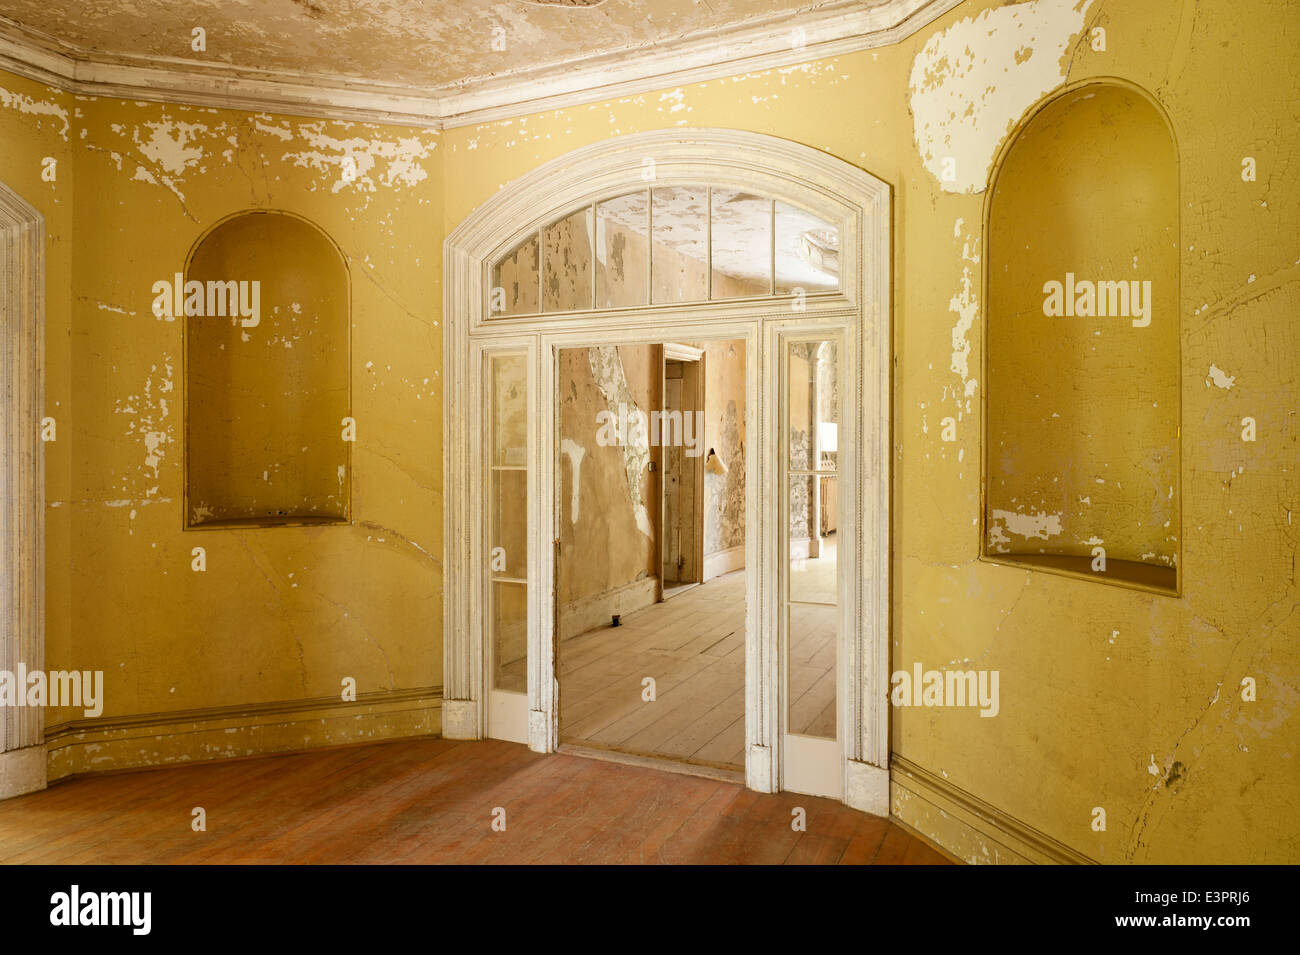 Glass door with fanlights in room with cracked wall paint and alcoves - Stock Image